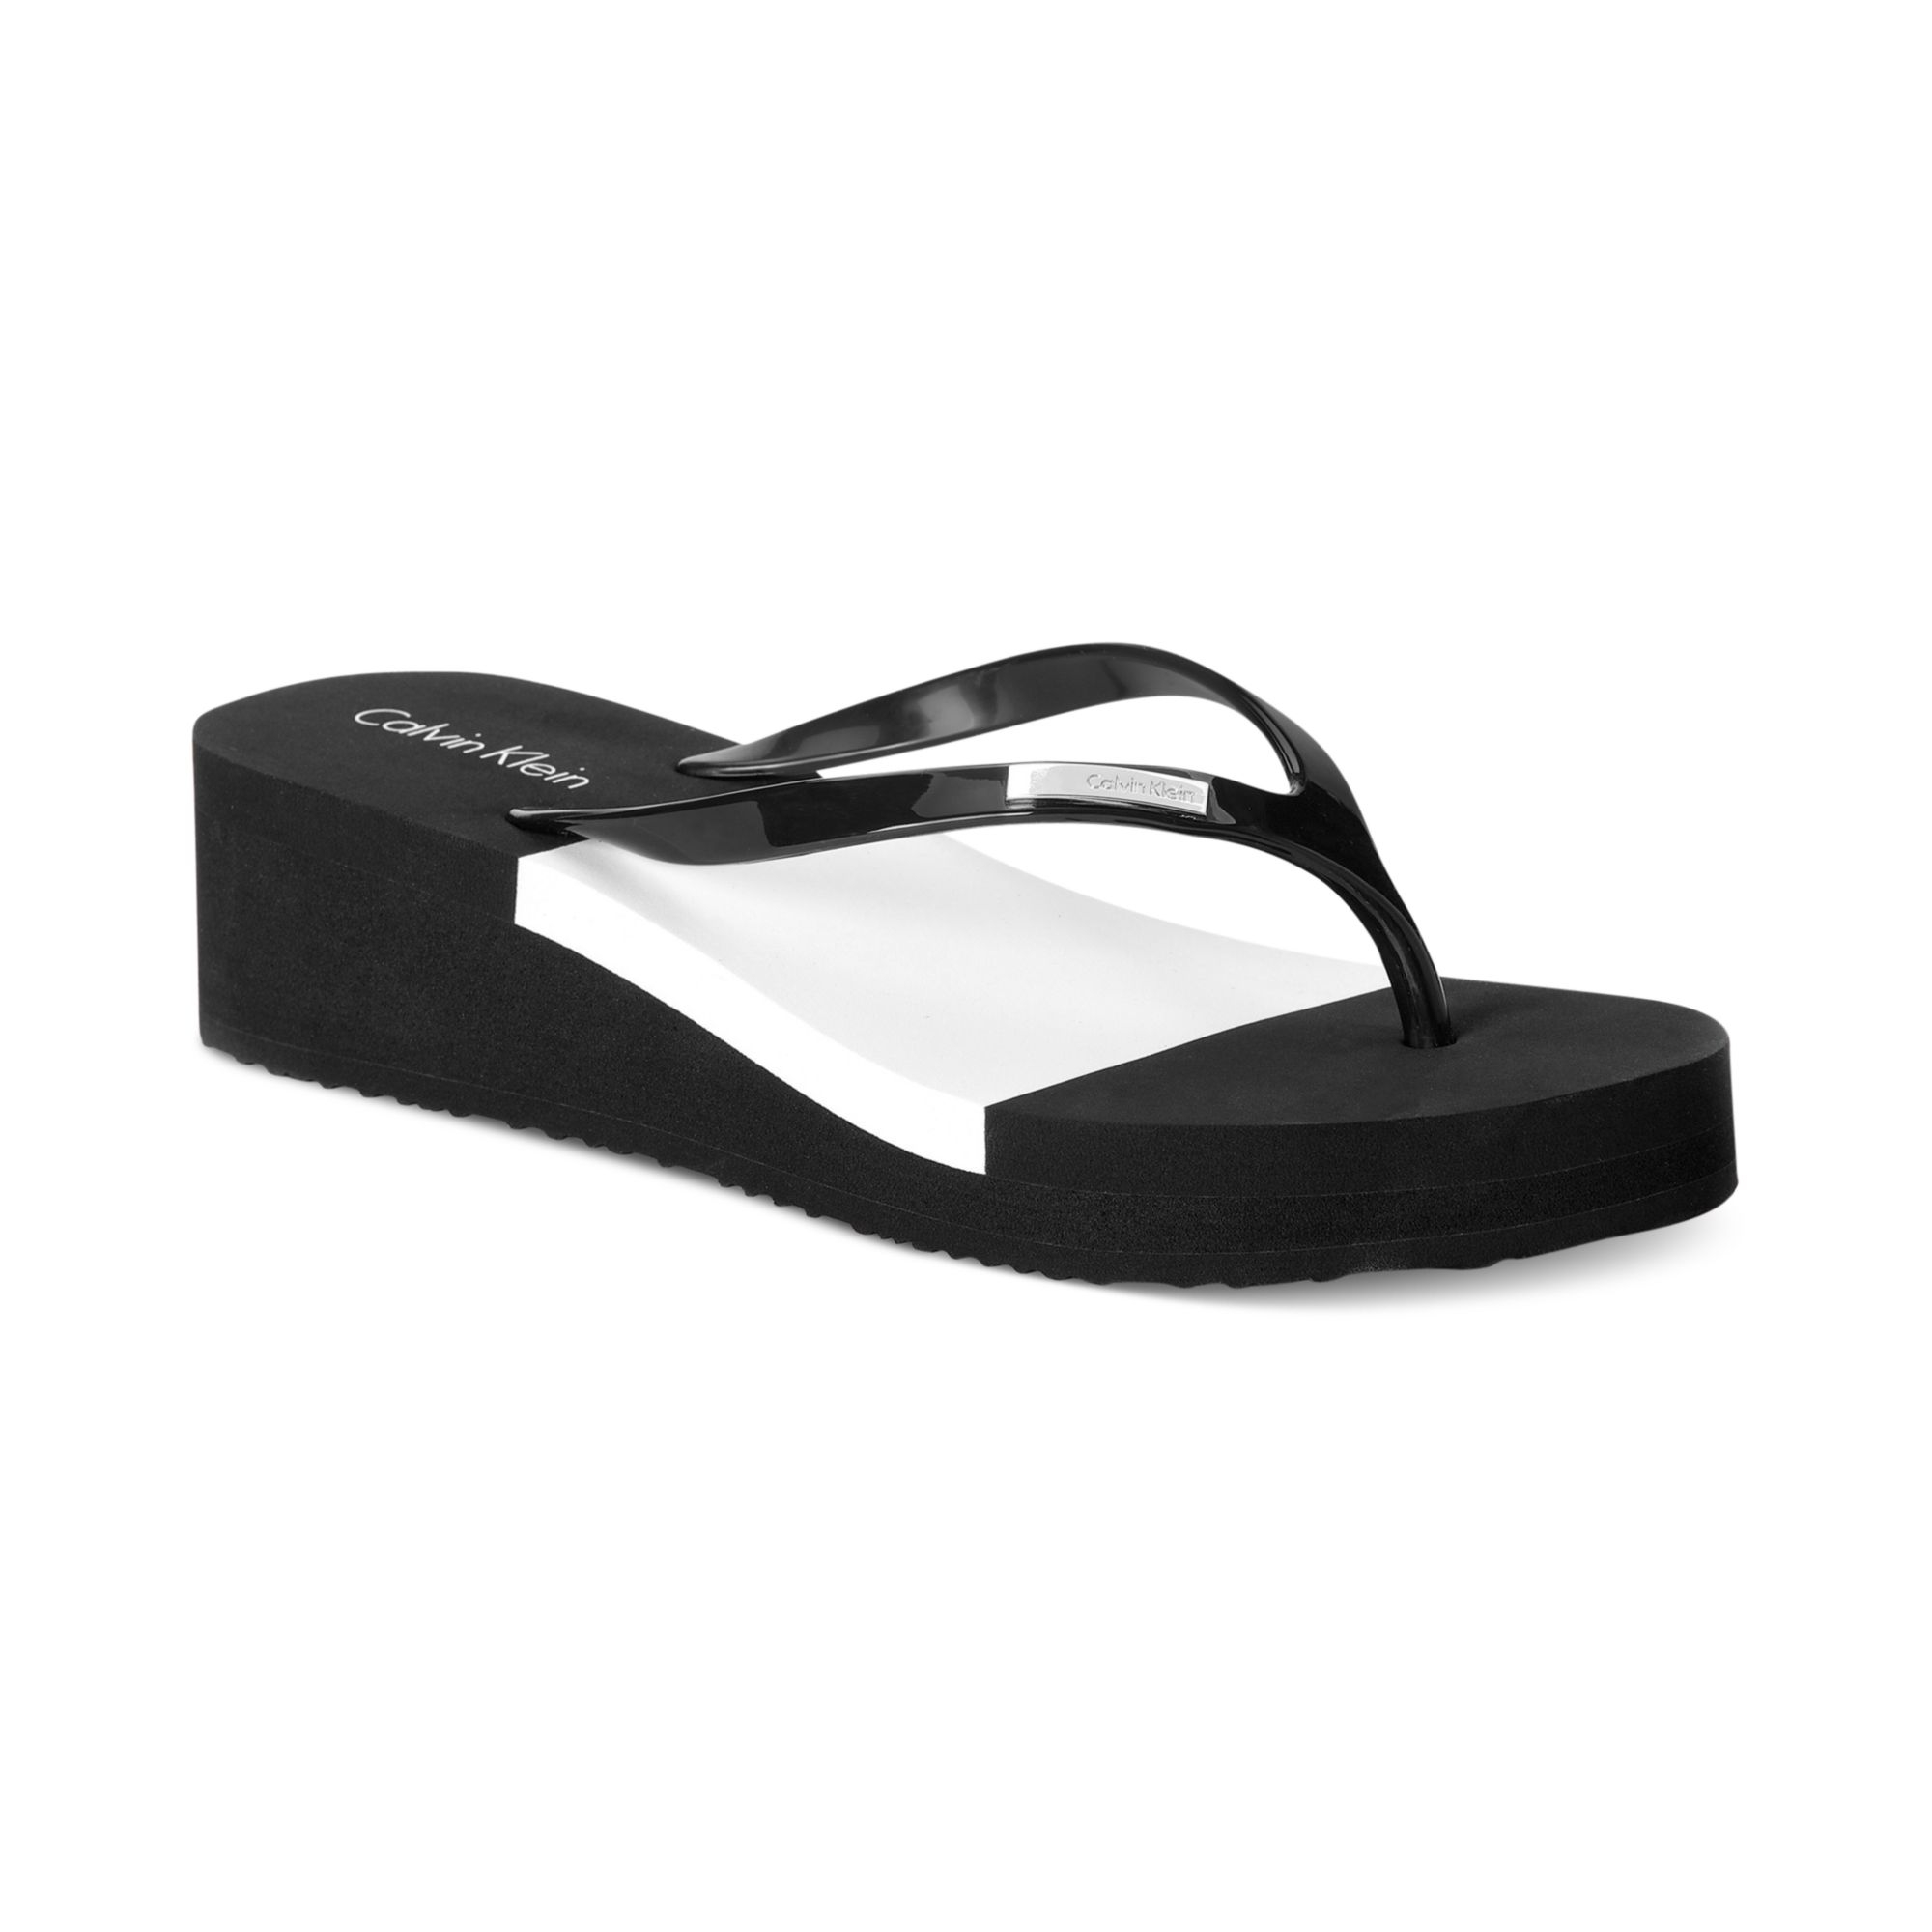 6bef42742e7c Gallery. Previously sold at  Macy s · Women s Dkny Rene Women s Two Strap  Sandals ...